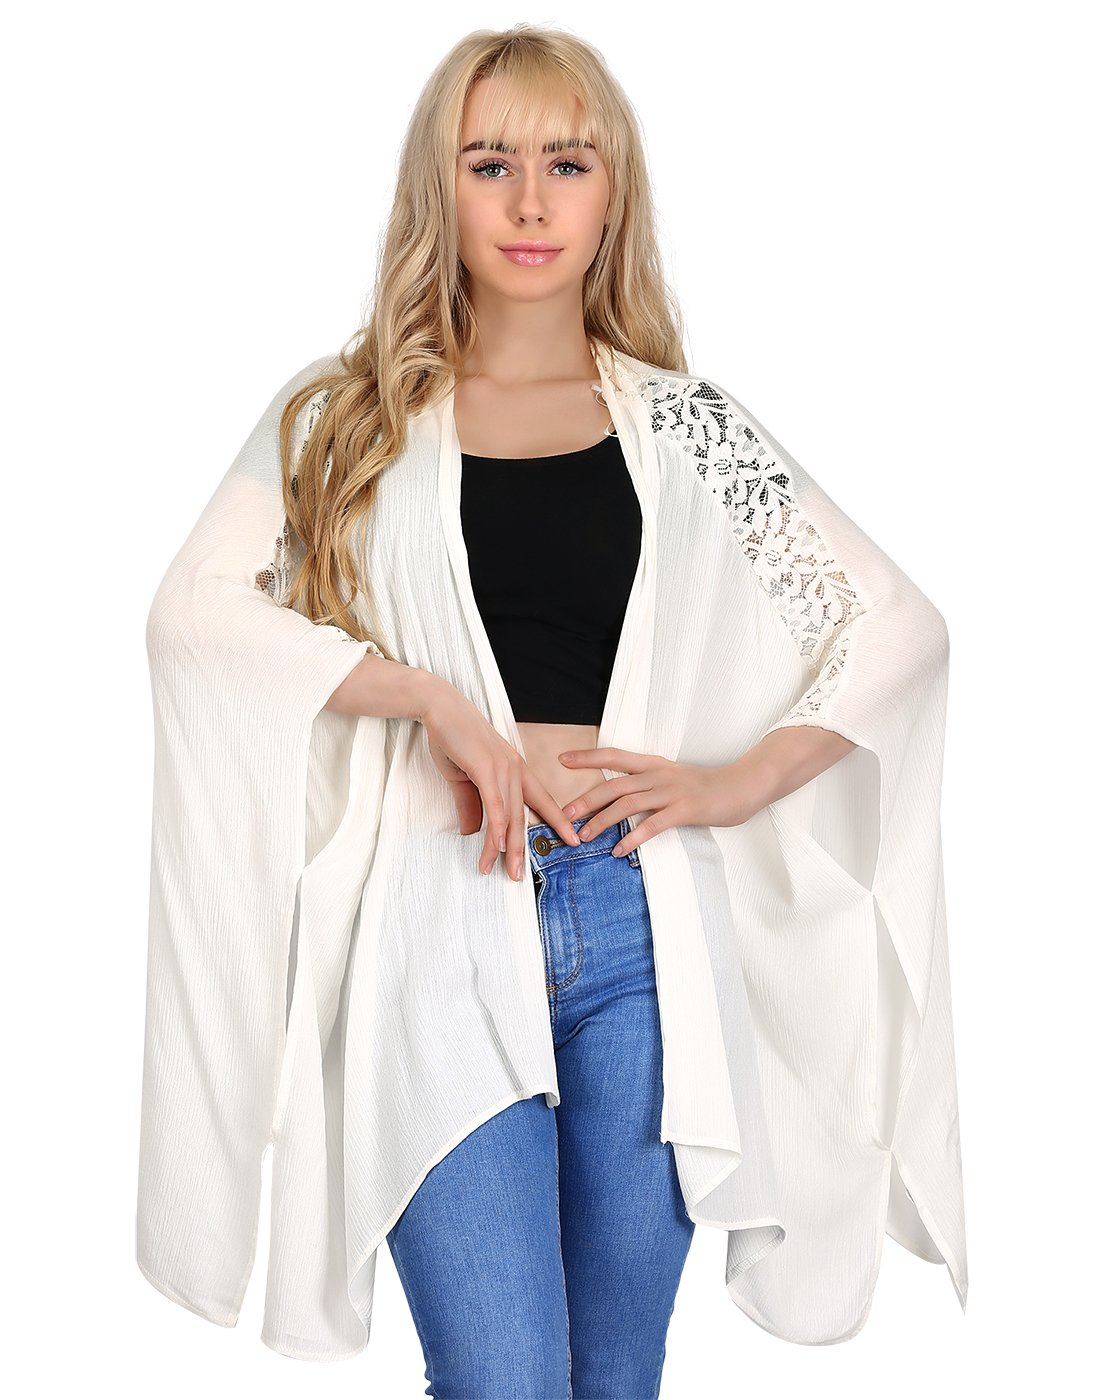 HDE Women's Plus Size Open Front Kimono Cardigan Loose Lace Sleeves Blouse Top (Cream, 3X)